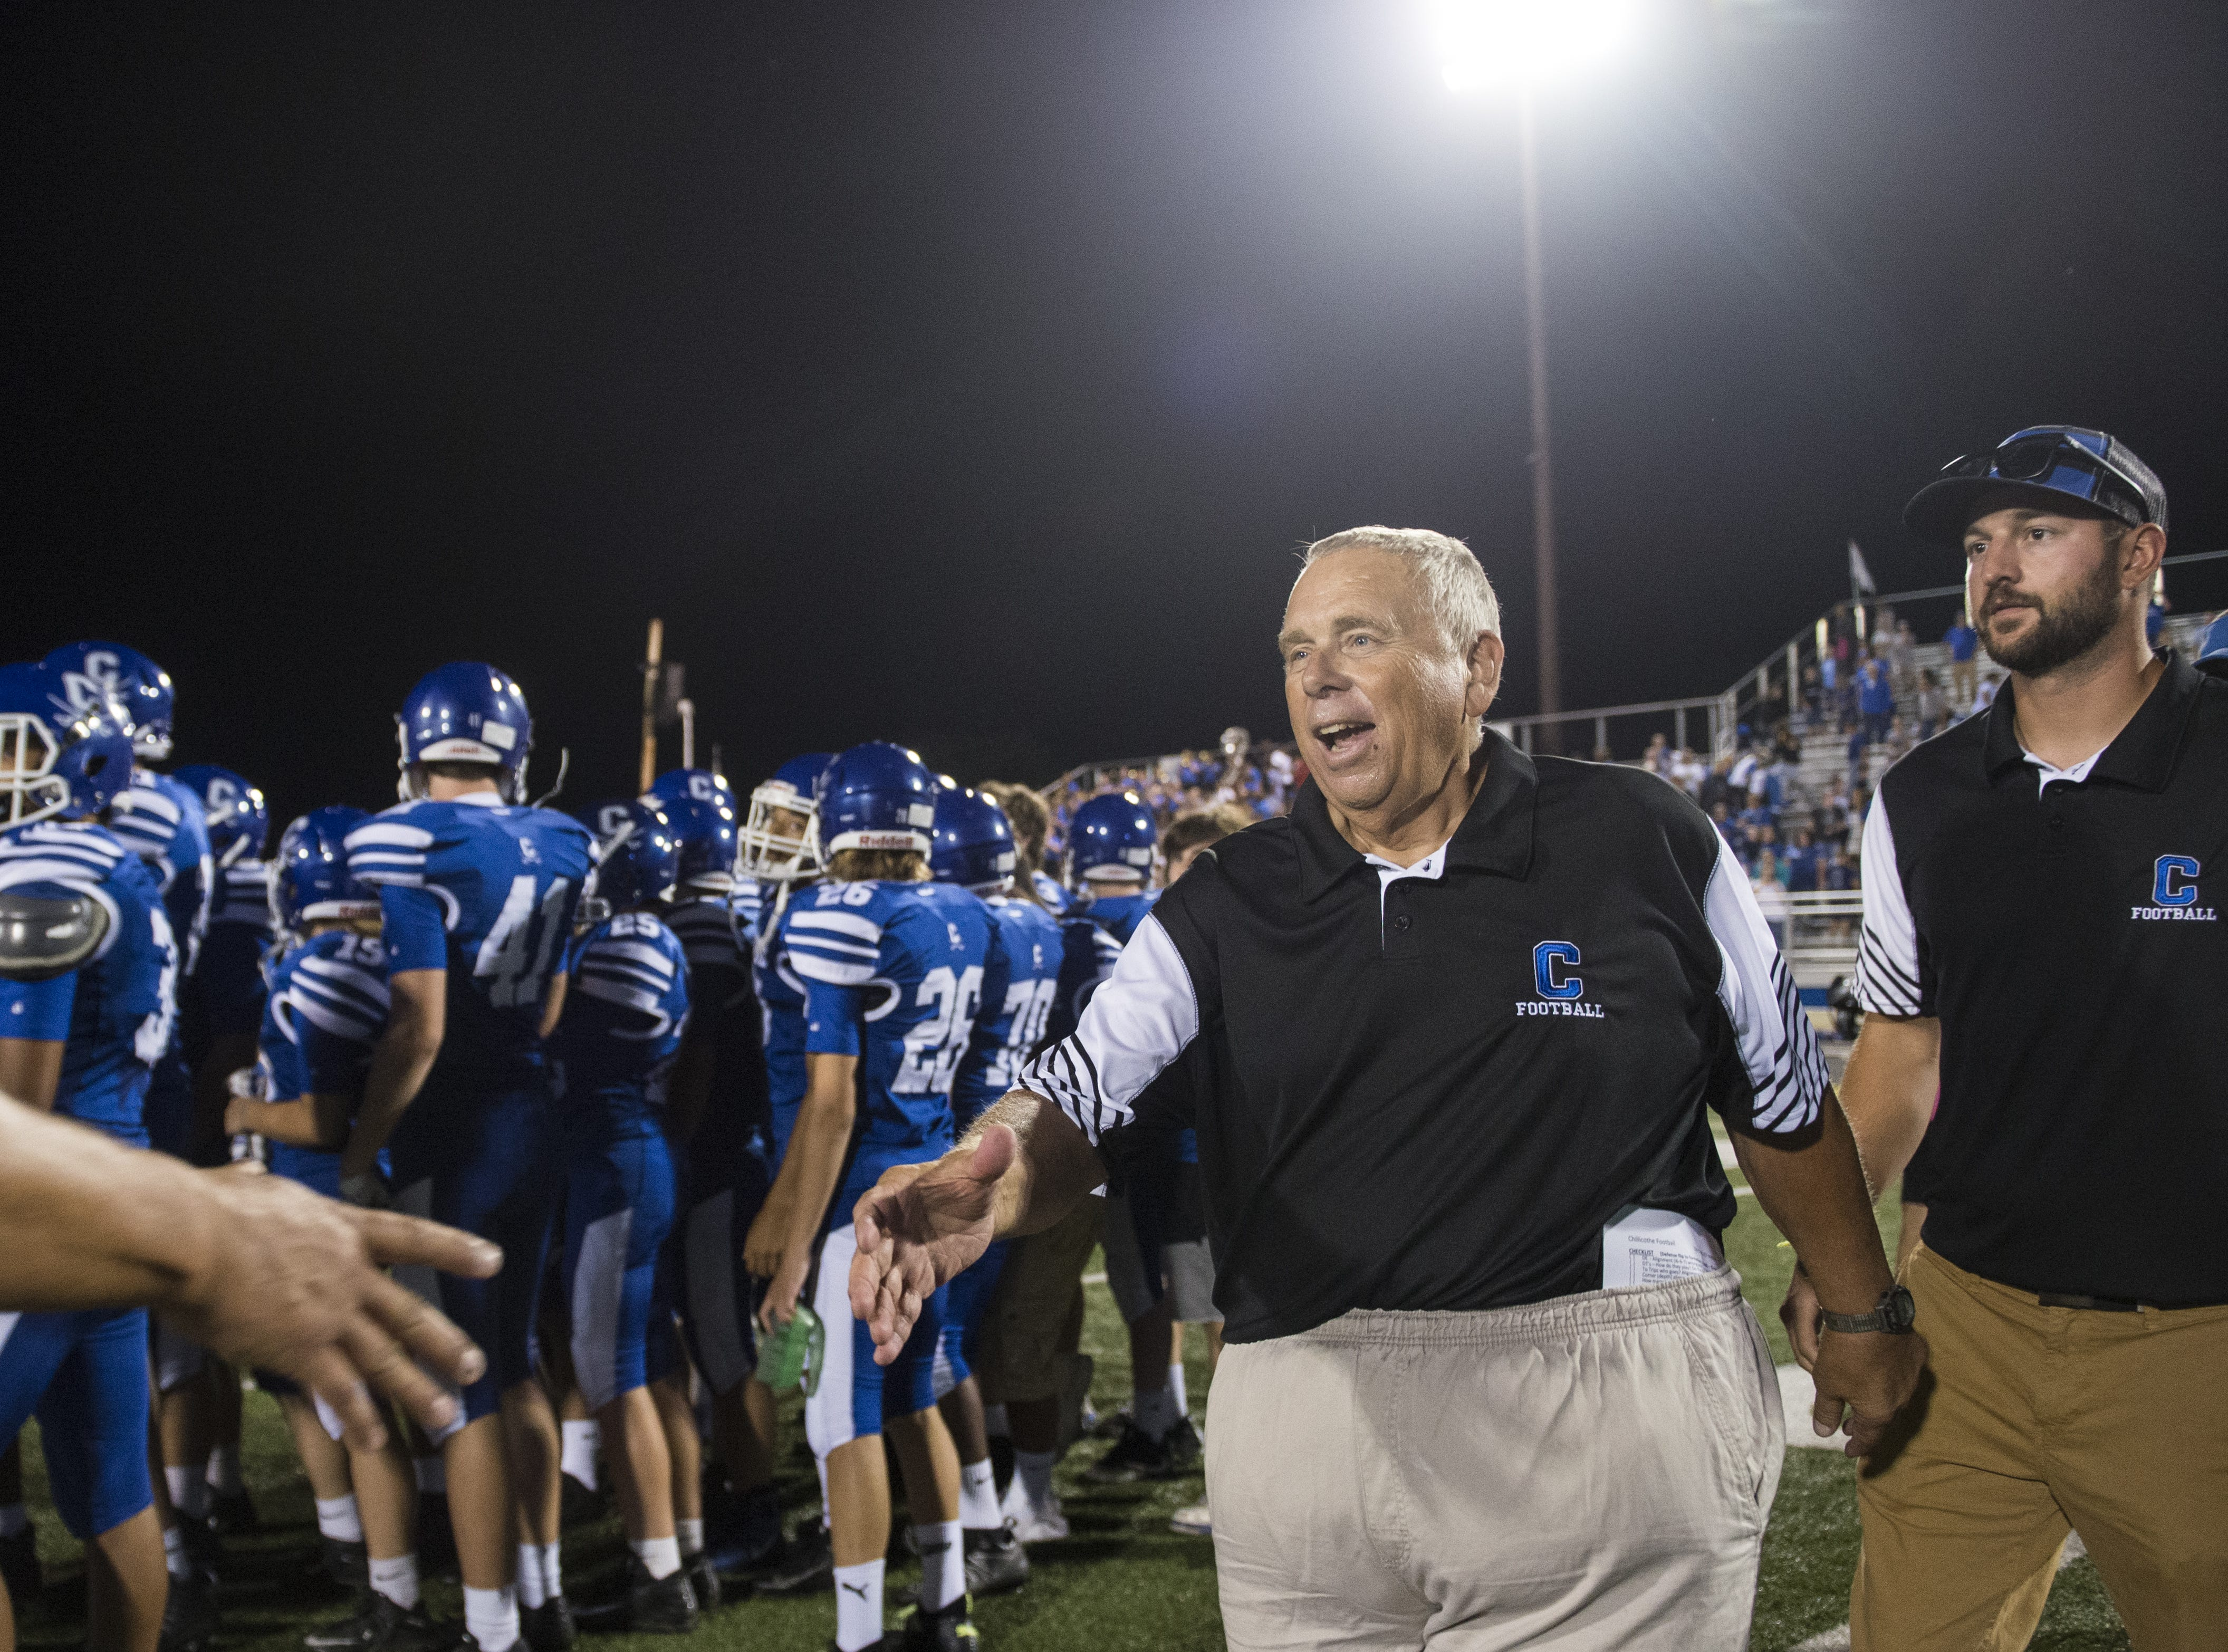 Chillicothe's head coach Ron Hinton rejoices as the Cavaliers defeat the Vikings 14-13 at Harris Family Complex on Friday, August 24, 2018.